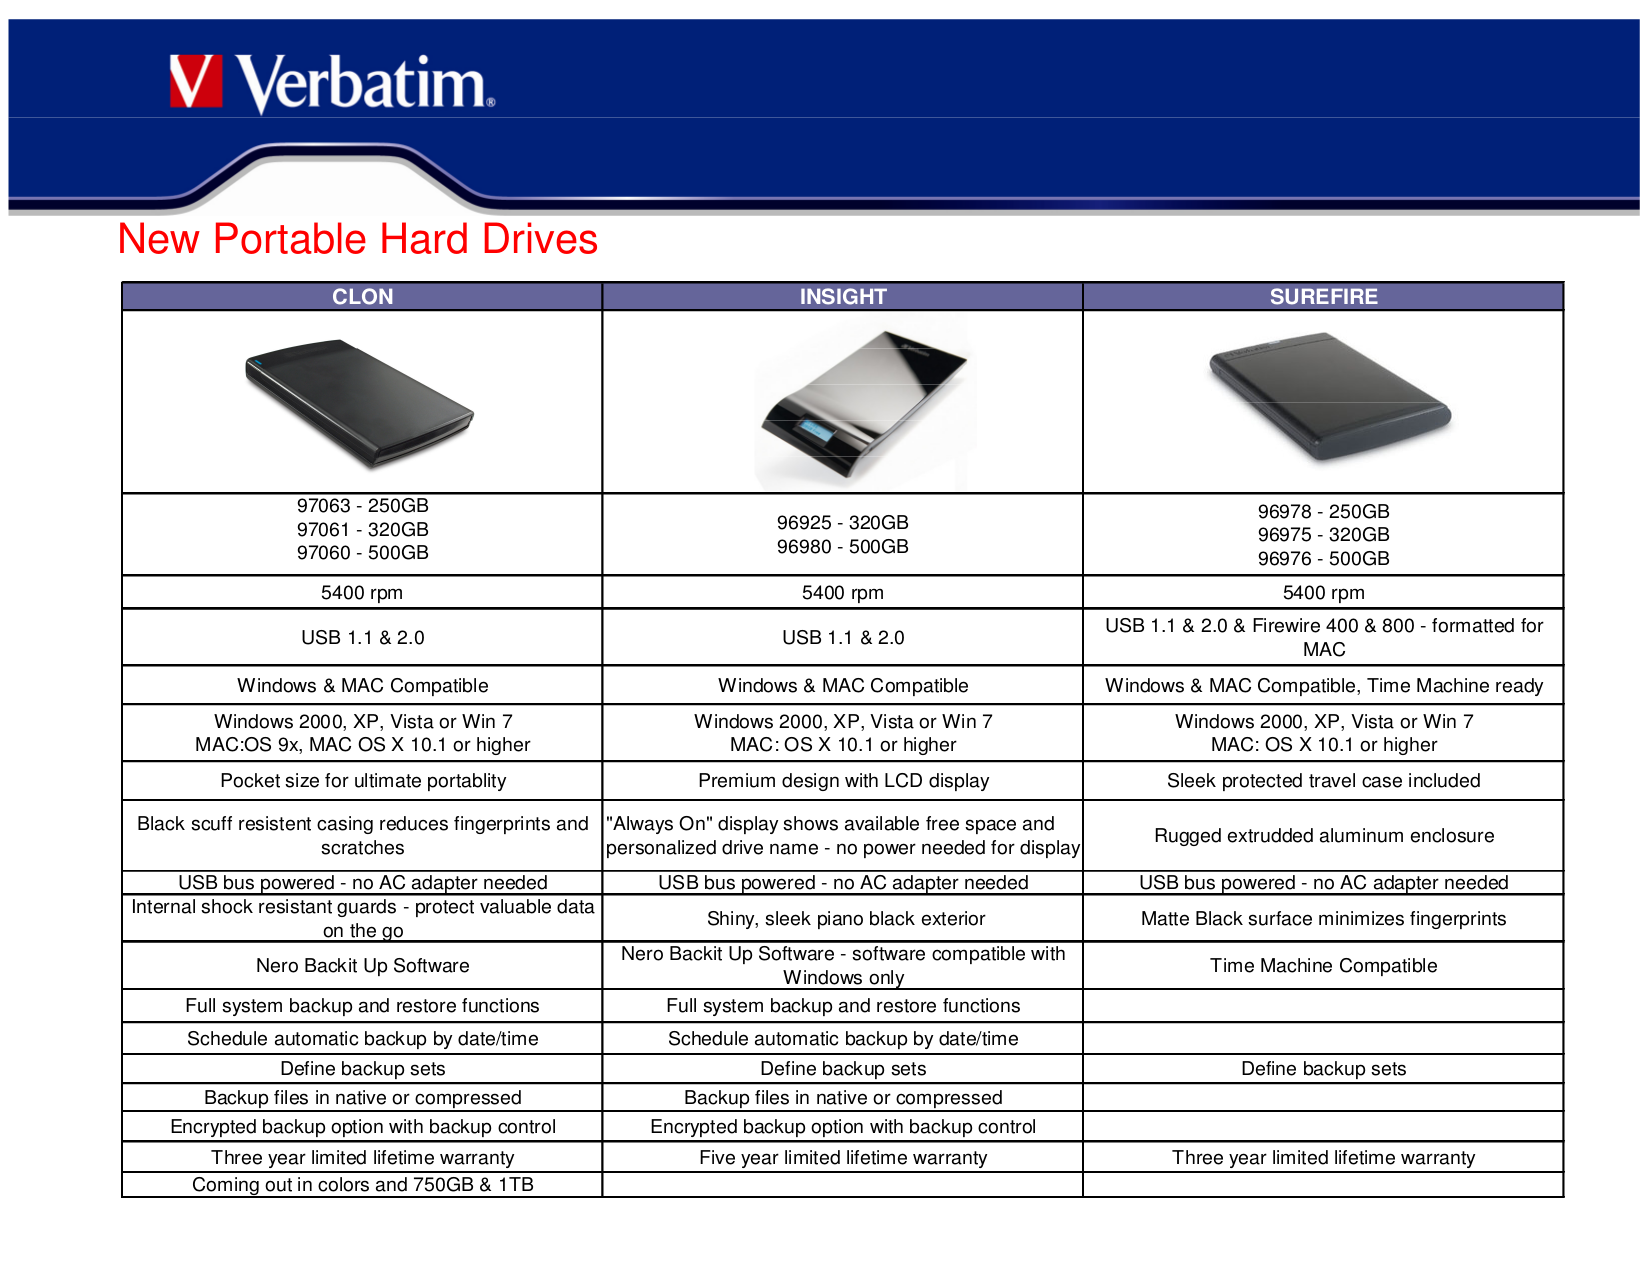 pdf for Verbatim Storage 96638 manual